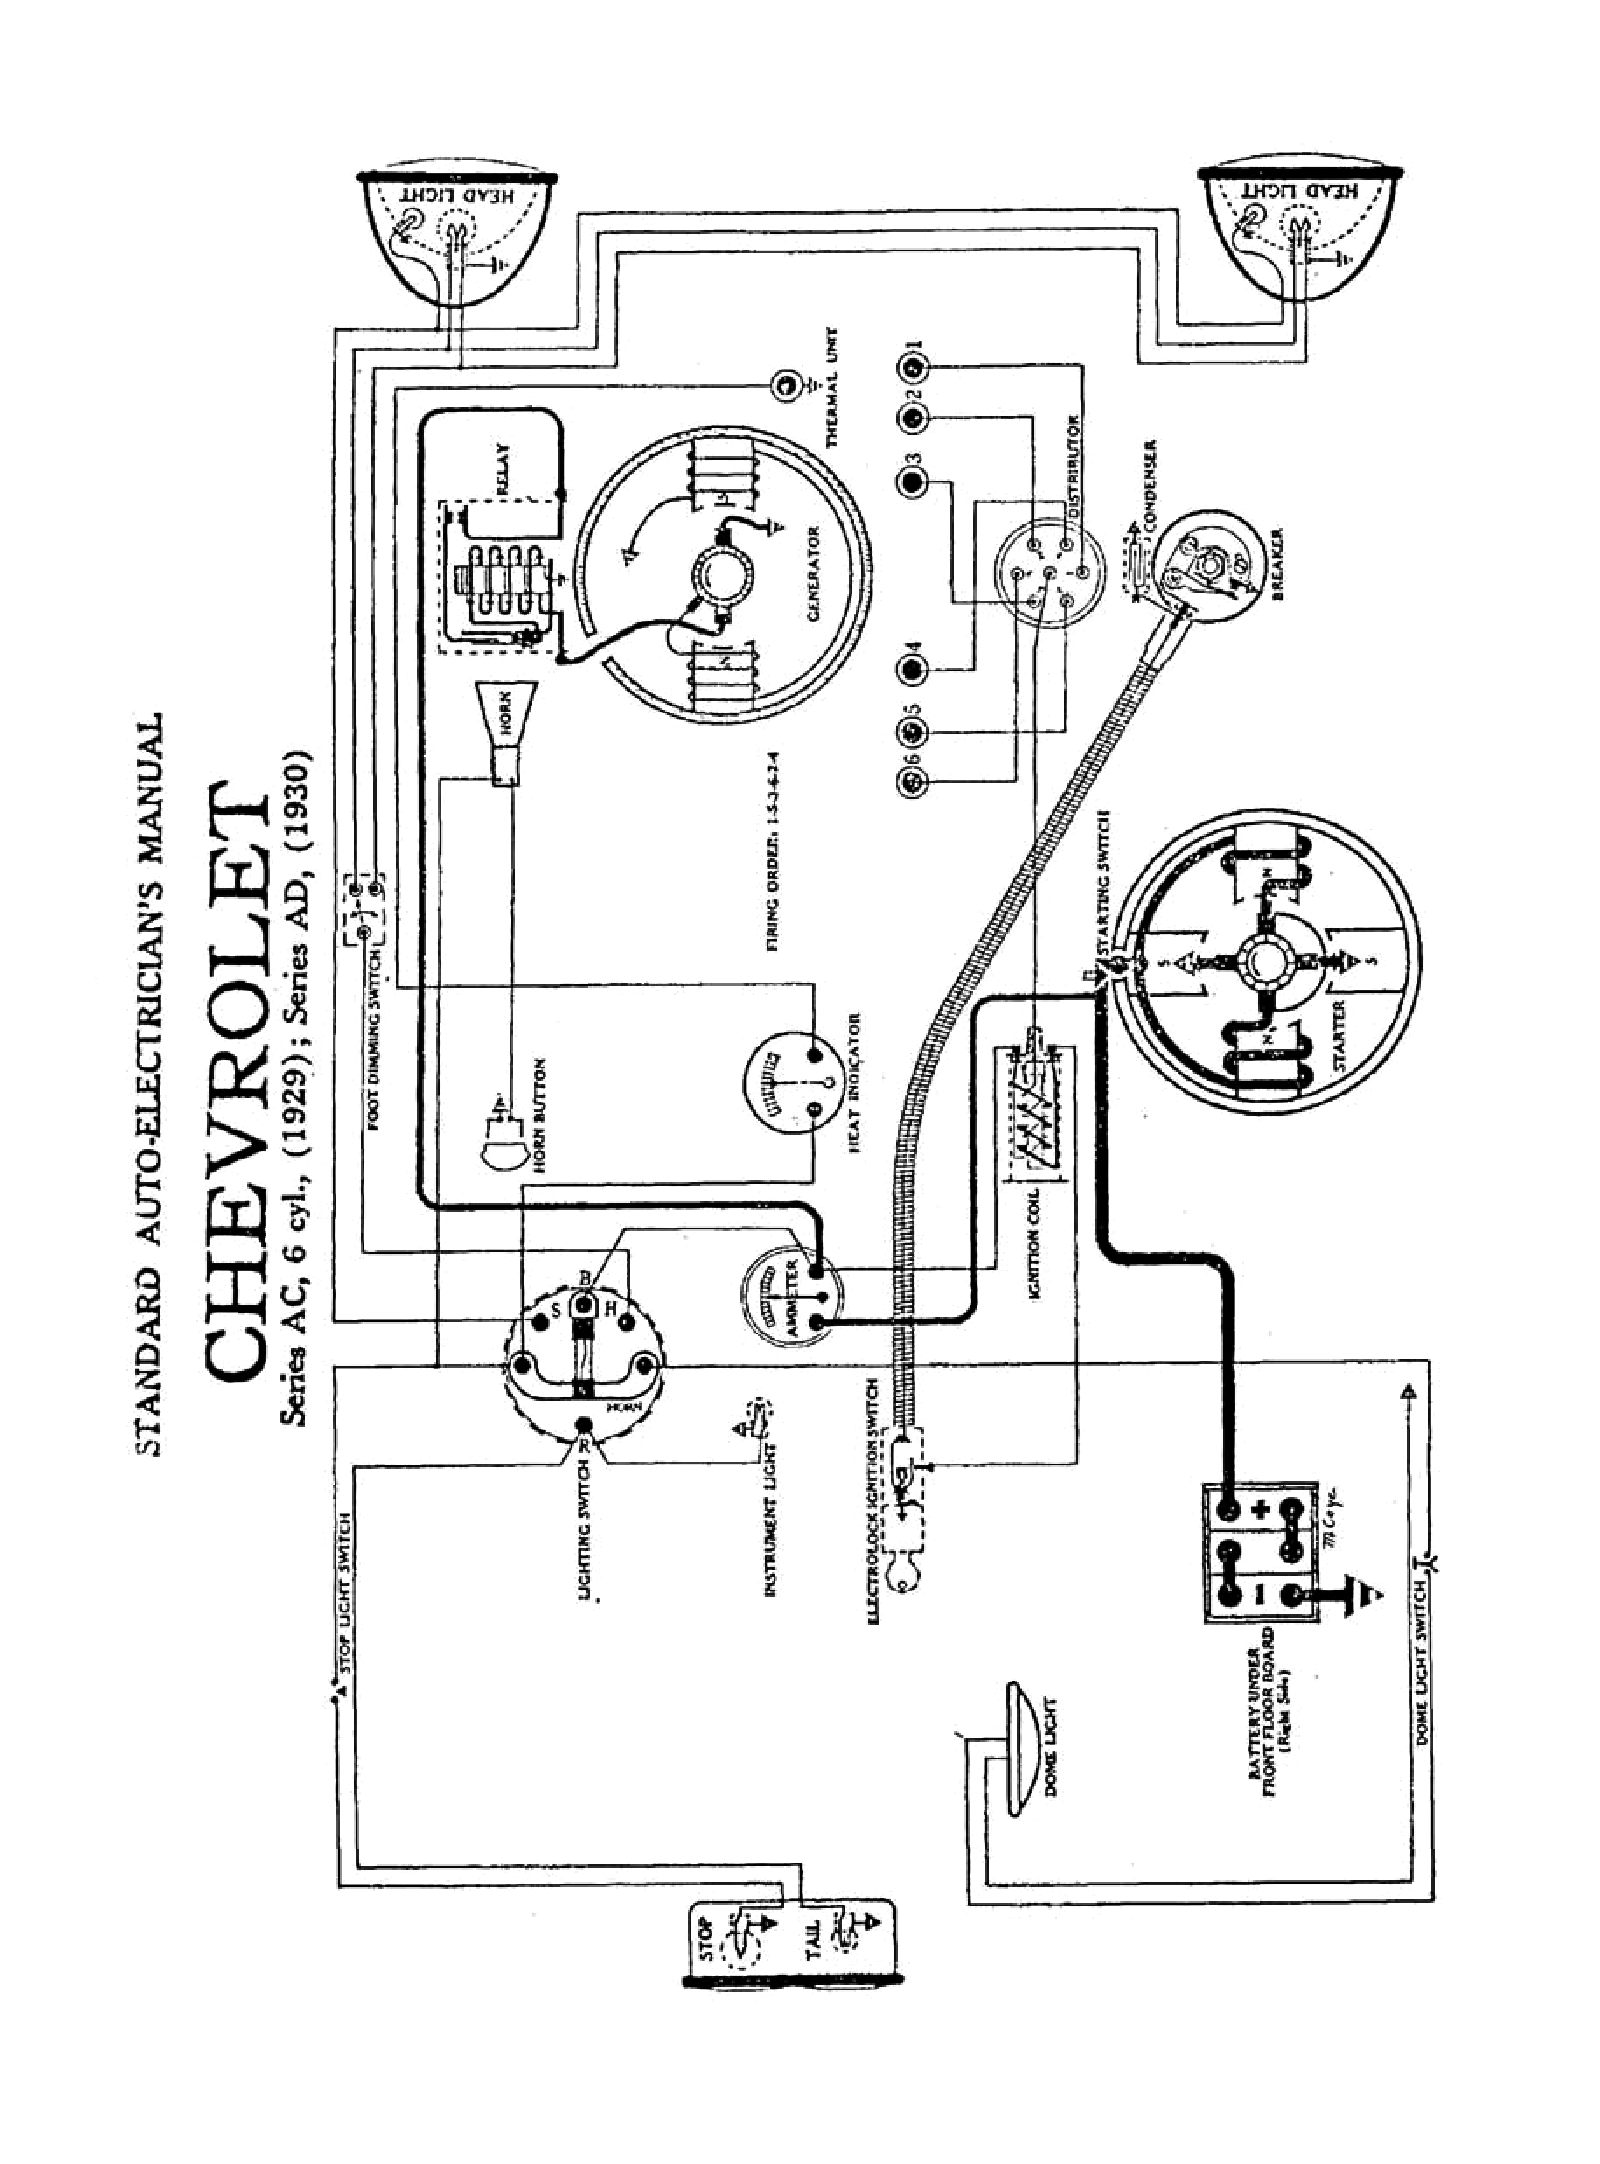 1930 ford stop light wiring diagram 1930 free engine [ 1600 x 2164 Pixel ]